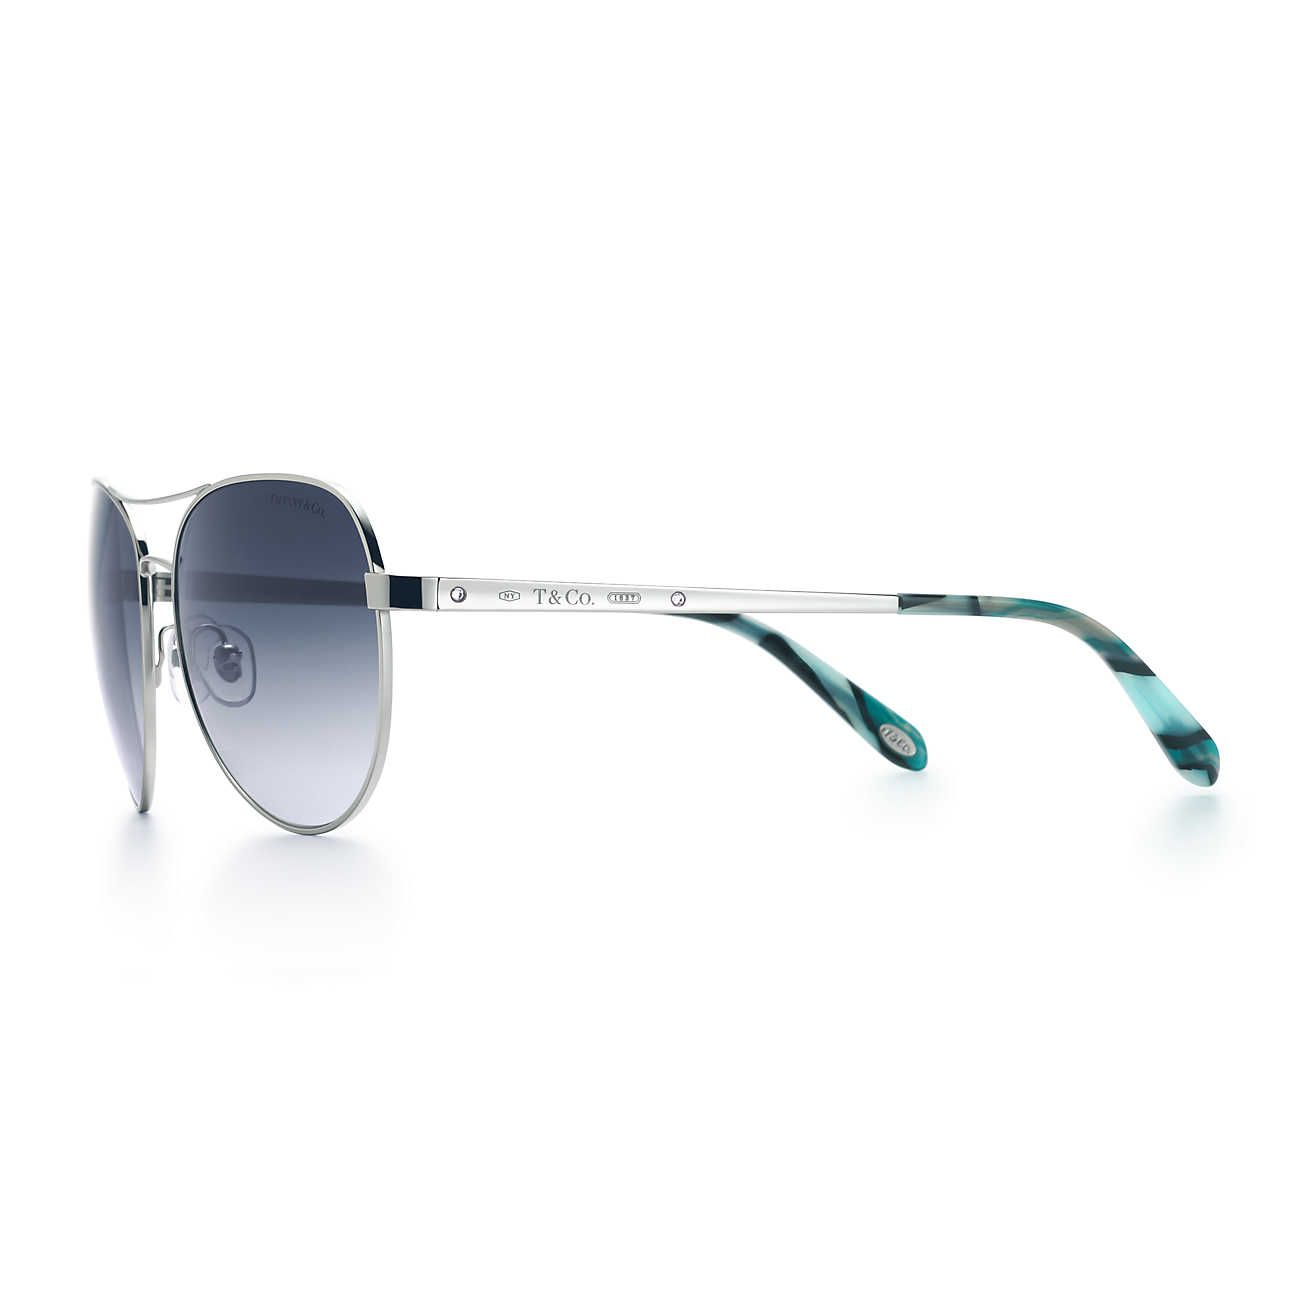 ac2696822b4 Tiffany 1837® aviator sunglasses in silver-colored metal and acetate ...